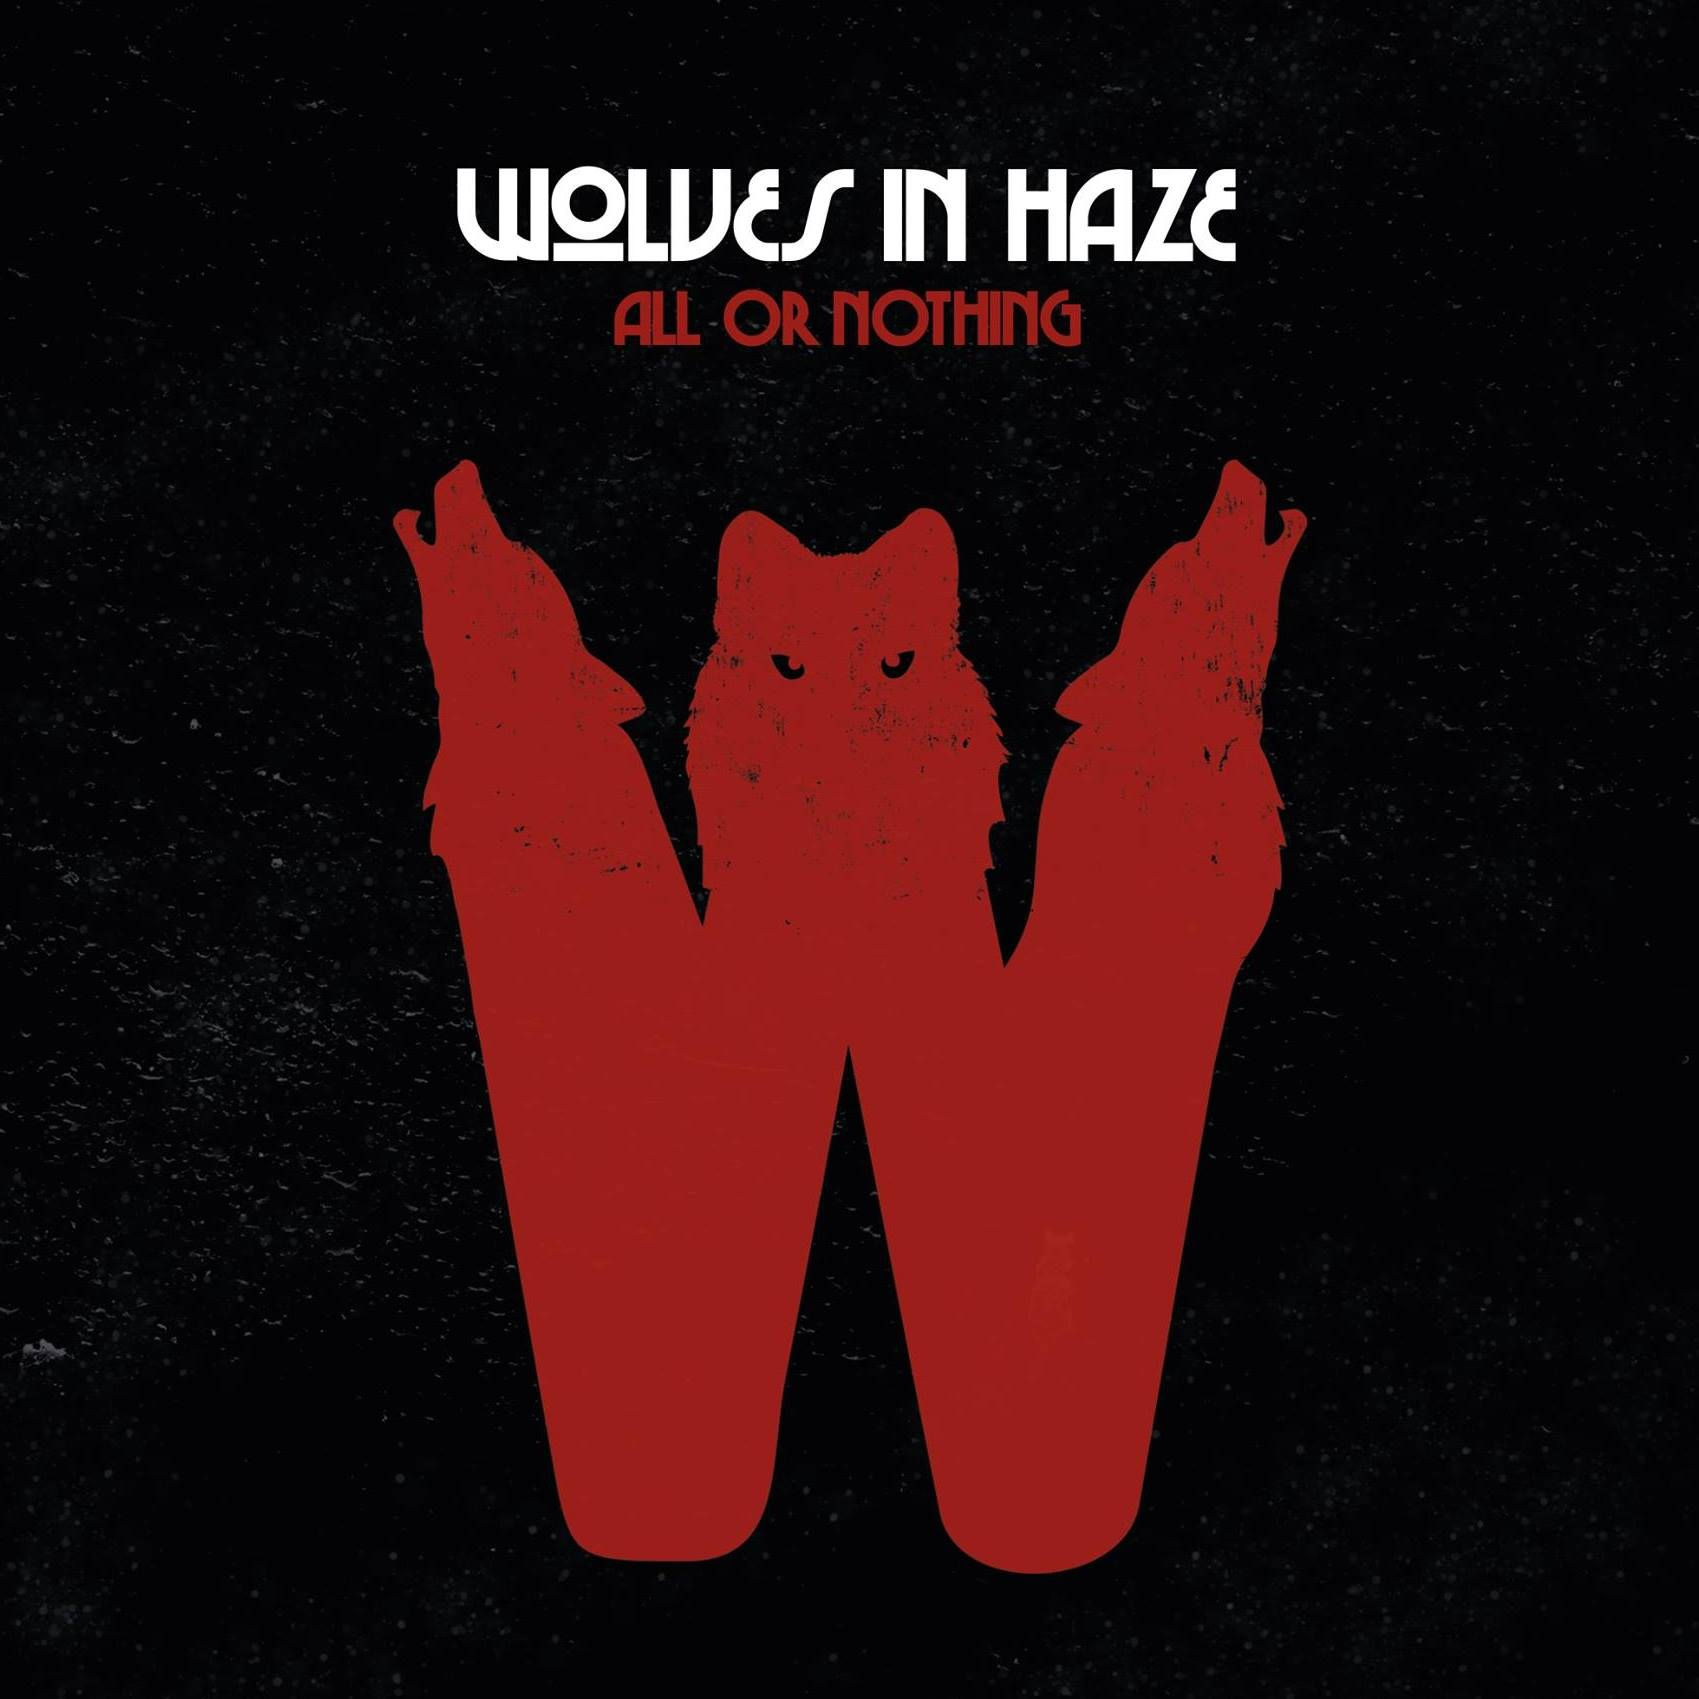 wolves in haze all or nothing